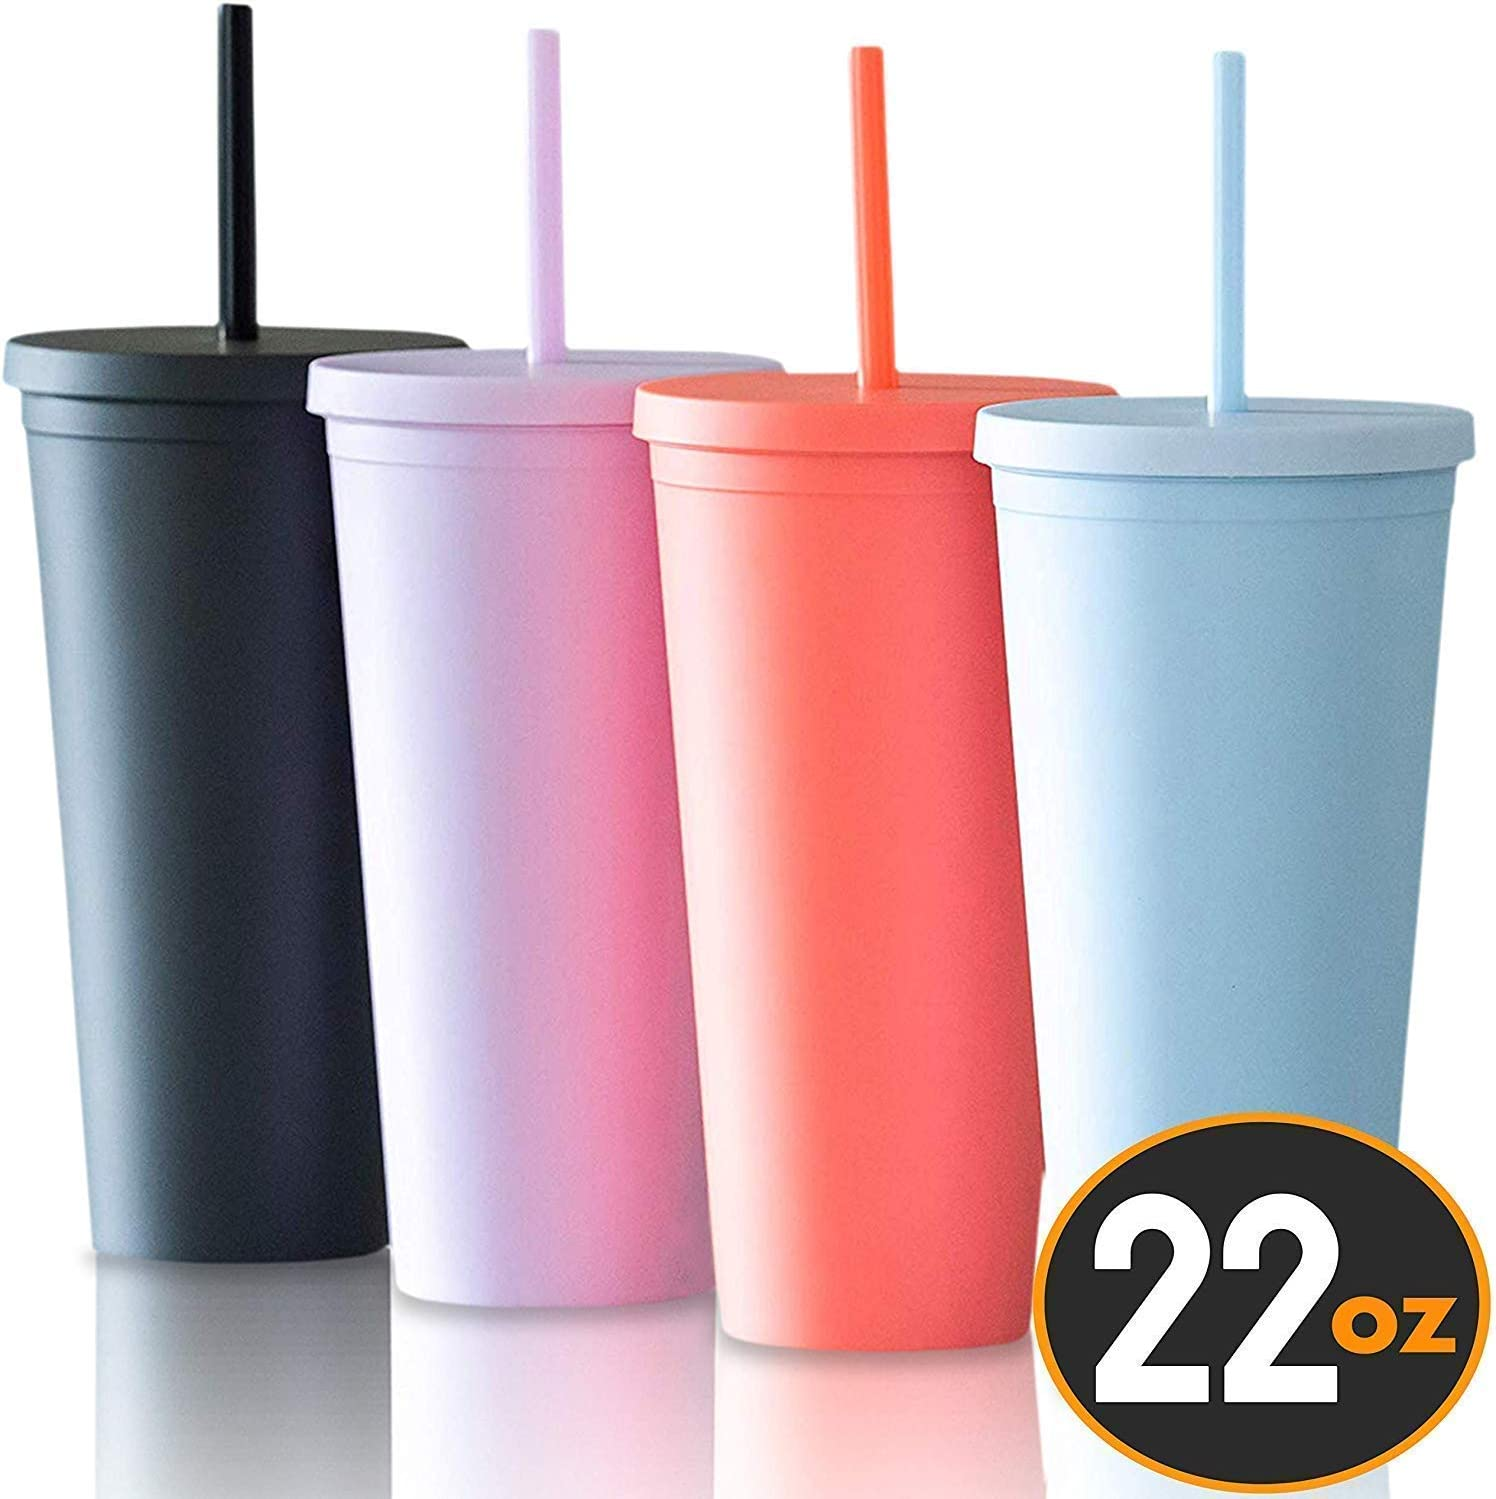 Tumblers with Lids (4 pack) 22oz Colored Acrylic Reusable Cups with Lids and Straws | Double Wall Matte Plastic Bulk Tumblers With FREE Straw Cleaner! Vinyl DIY Gifts